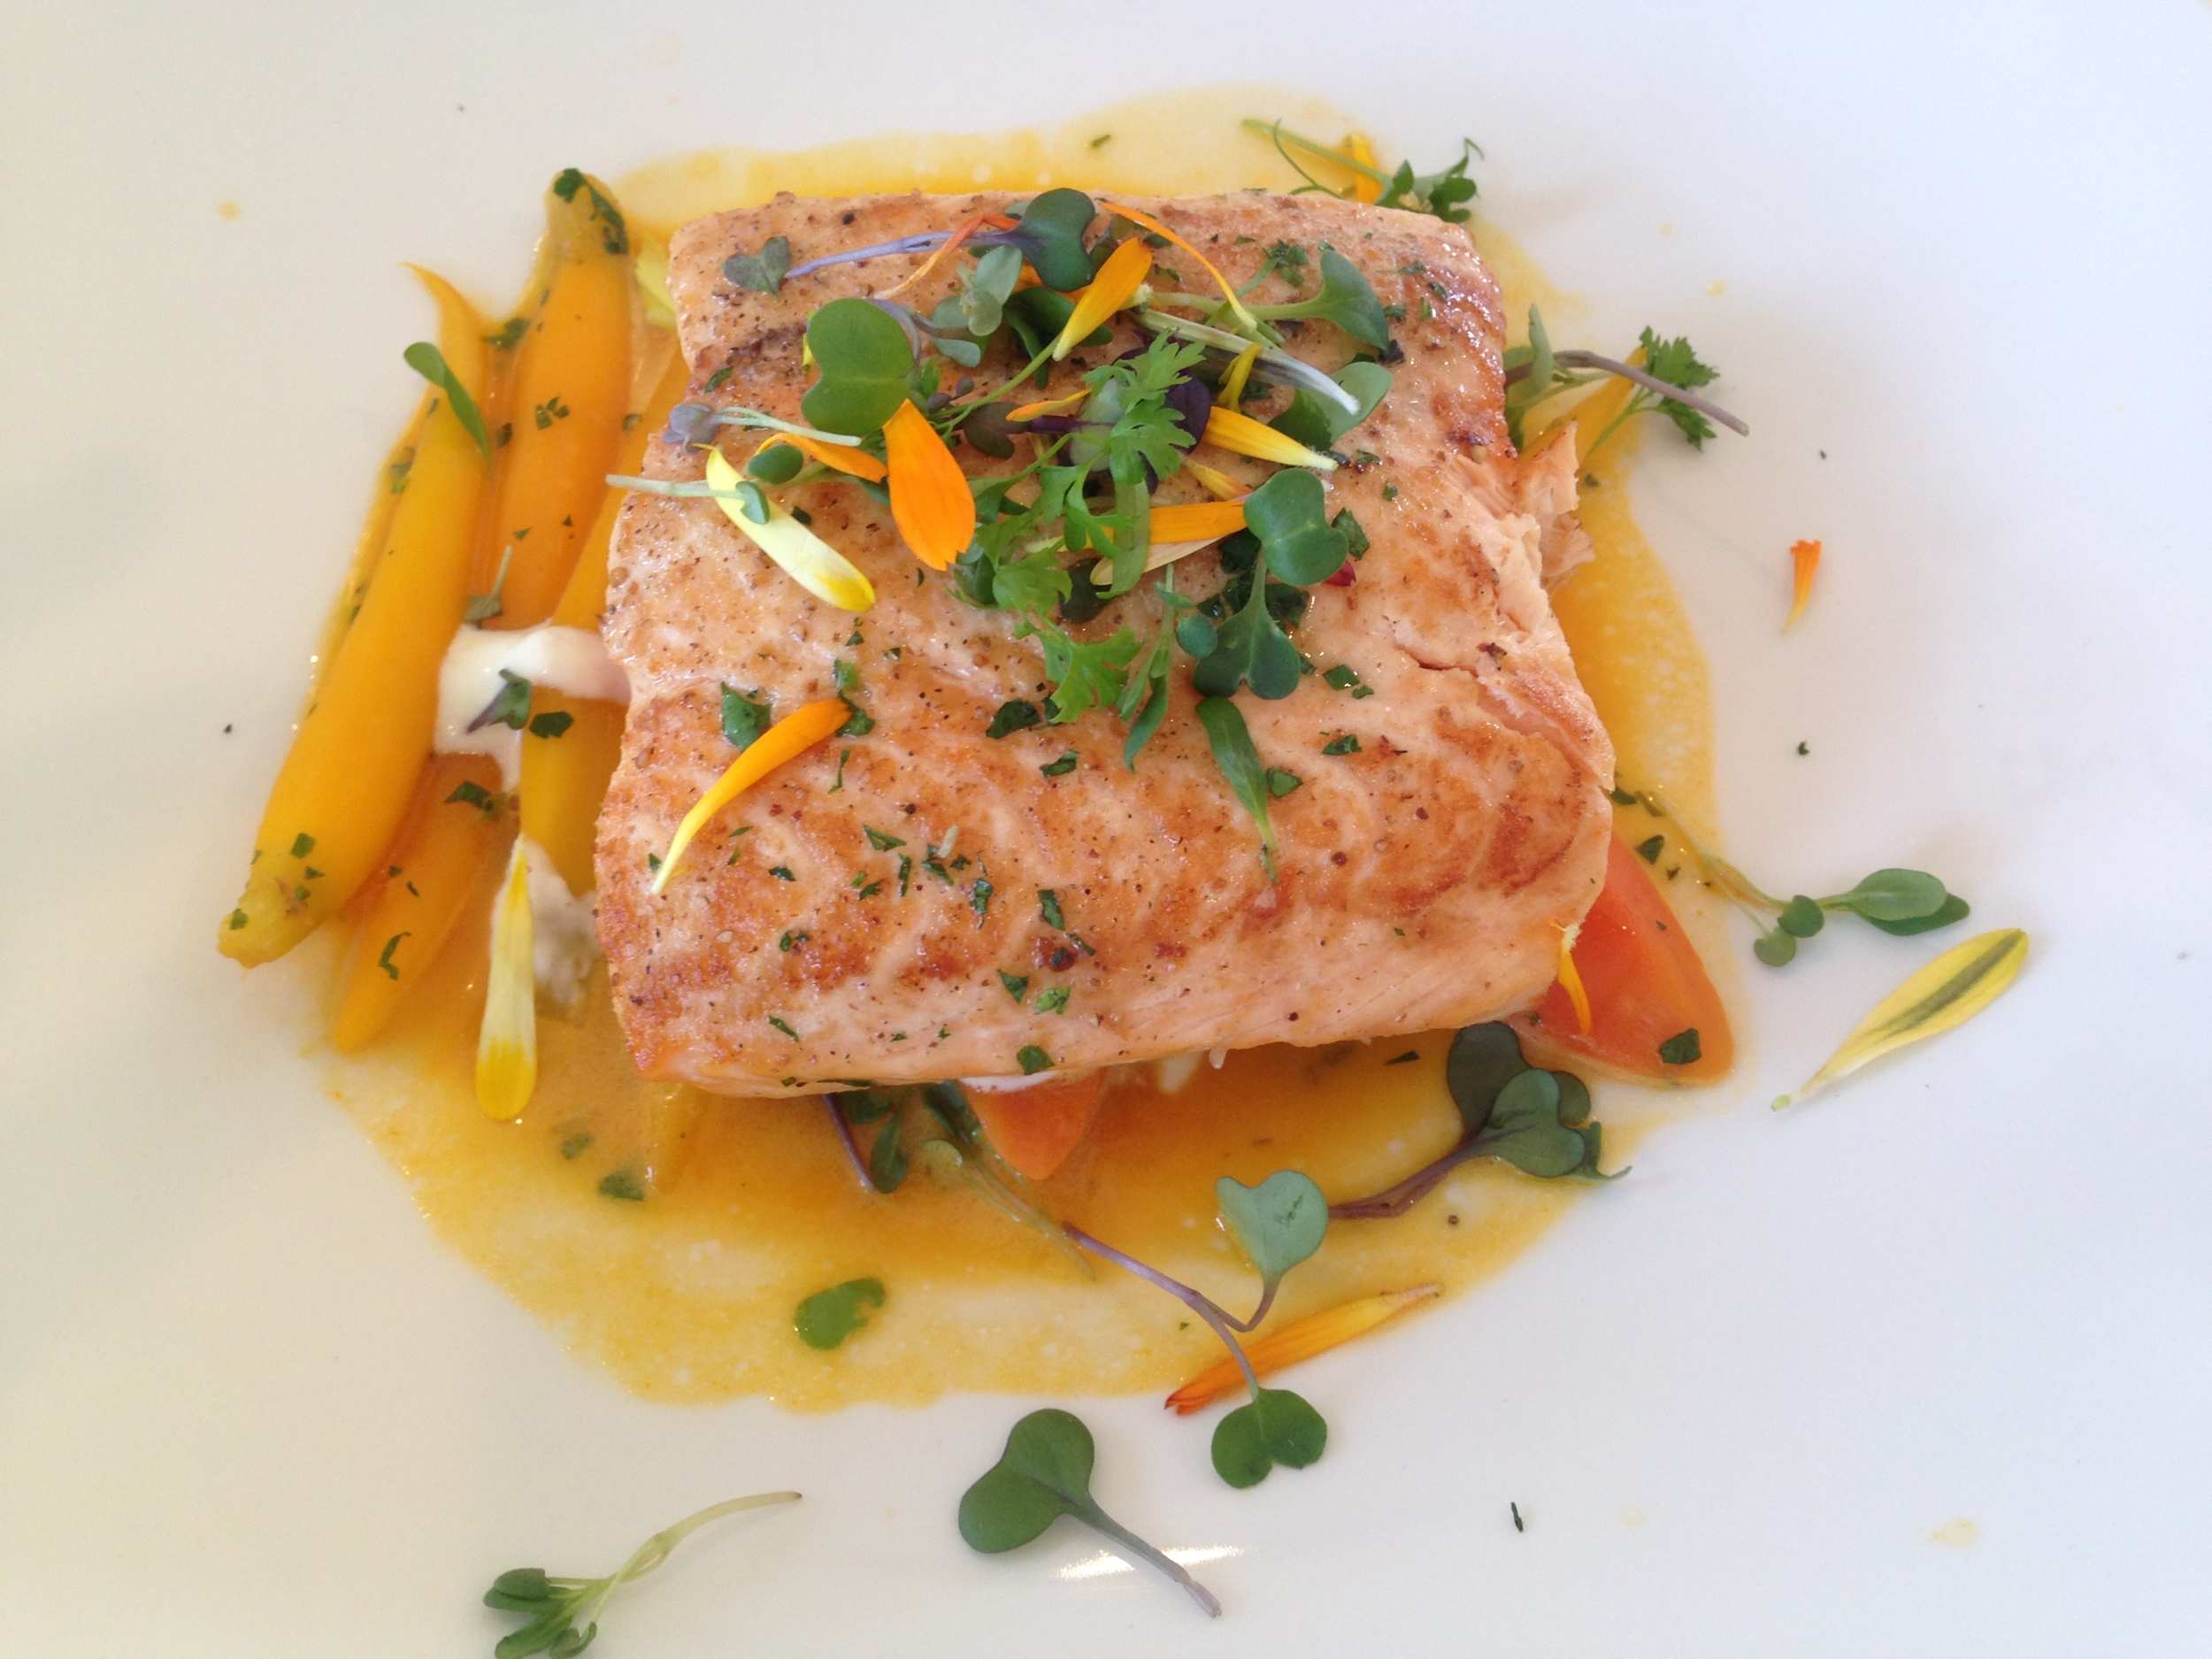 Salmon lunch at the Beverly Hilton.